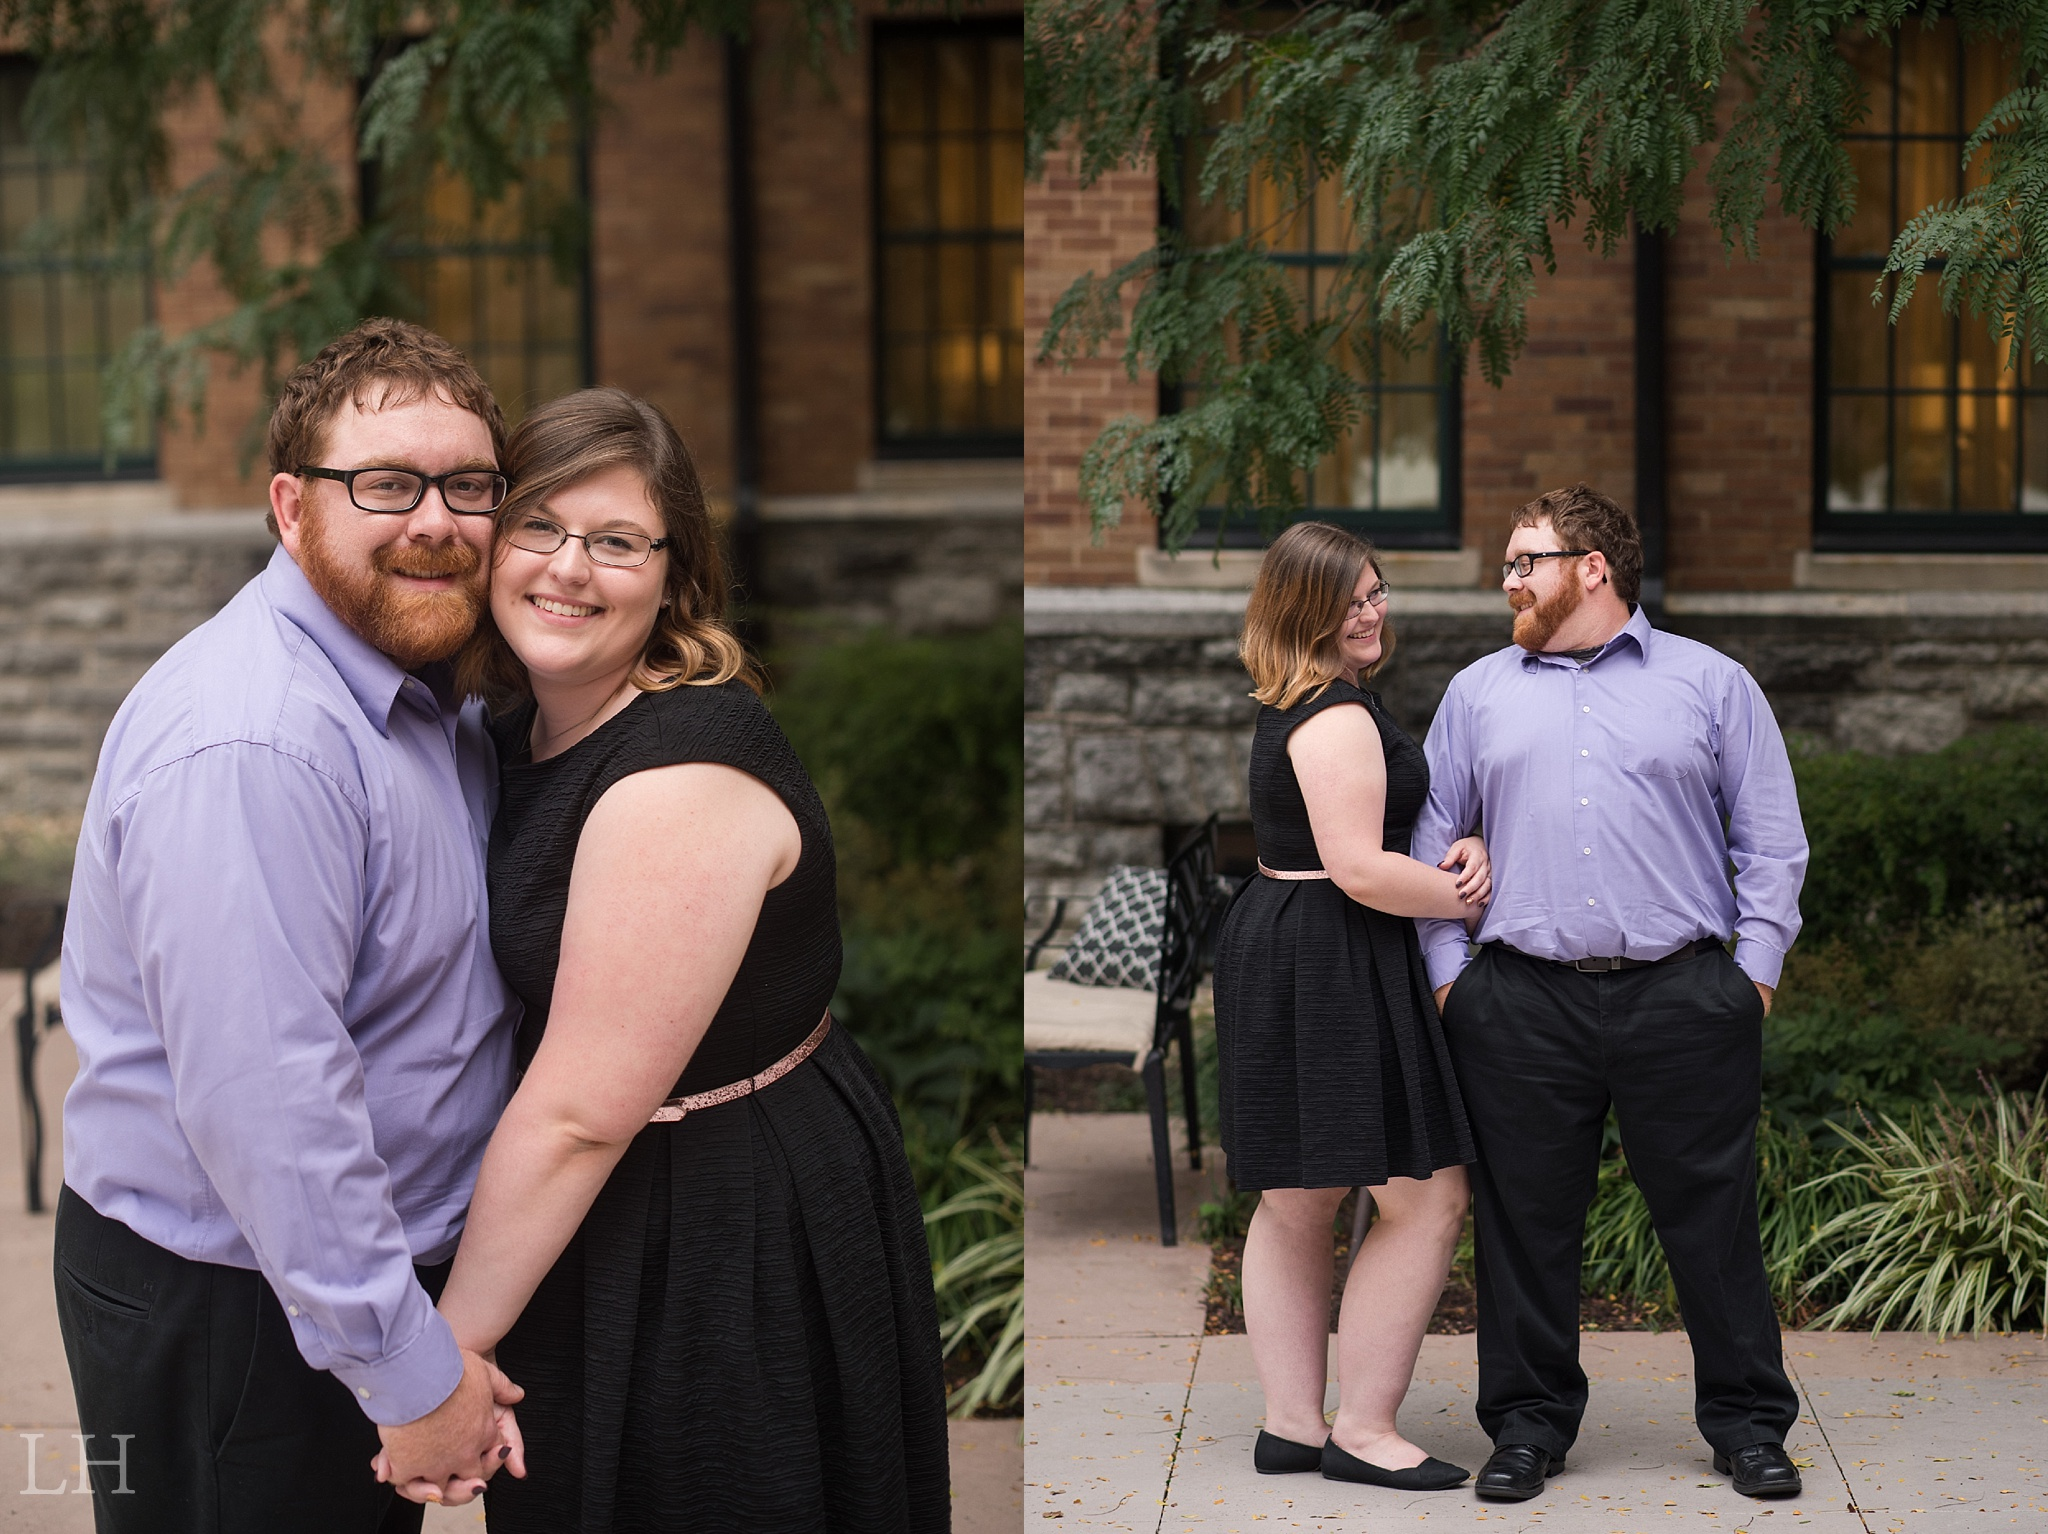 EmilyDustinEngaged_131_Blog.jpg